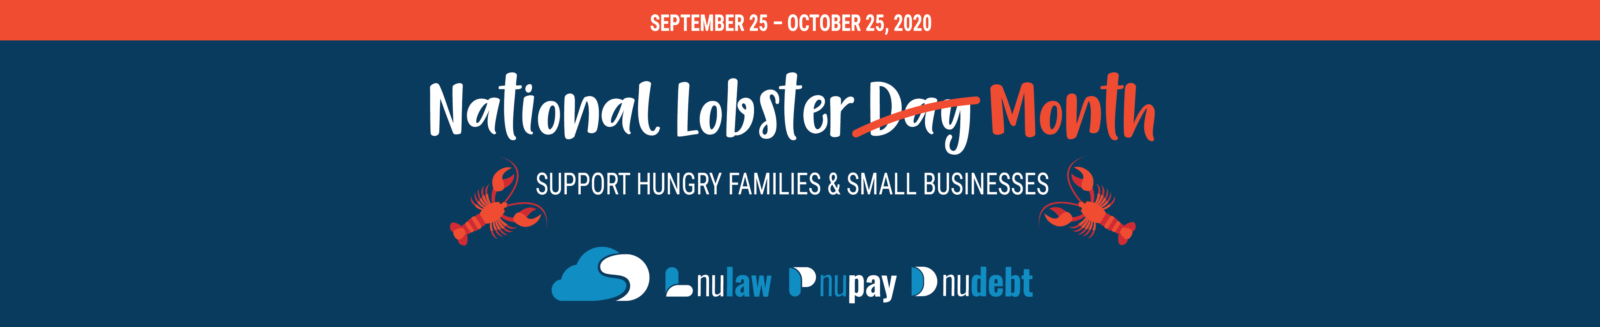 Read Let's Support Hungry Families & Small Businesses